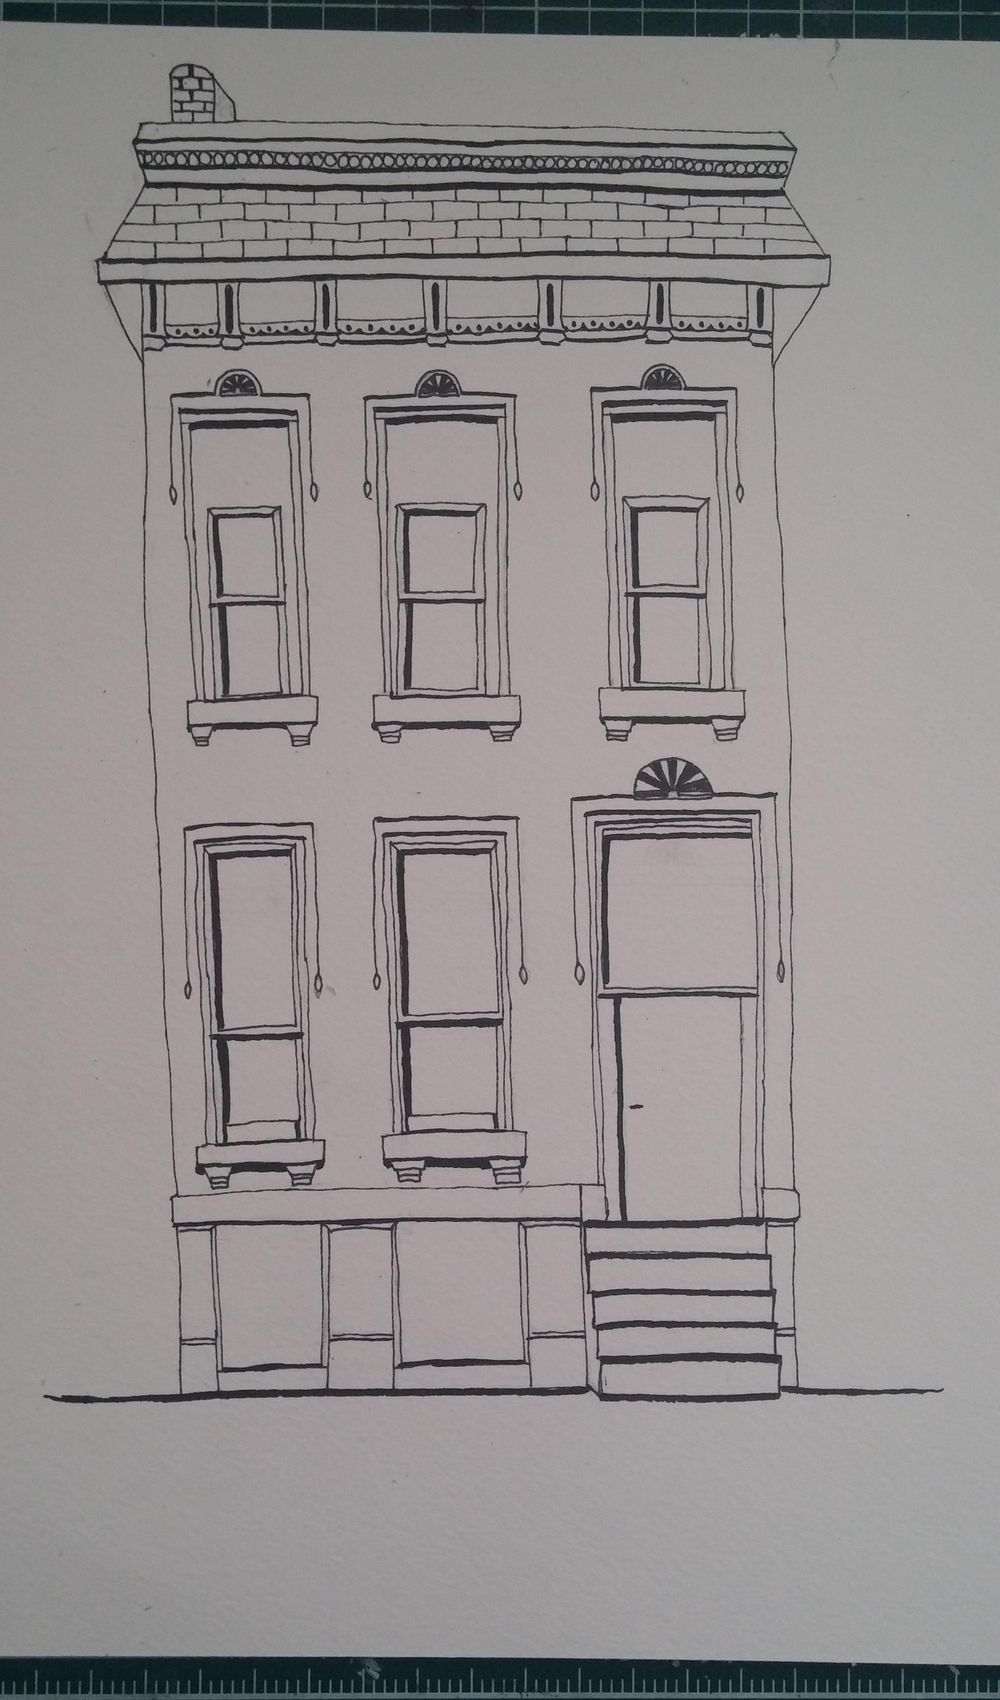 A Restoration of Old and Abandoned Houses - image 11 - student project